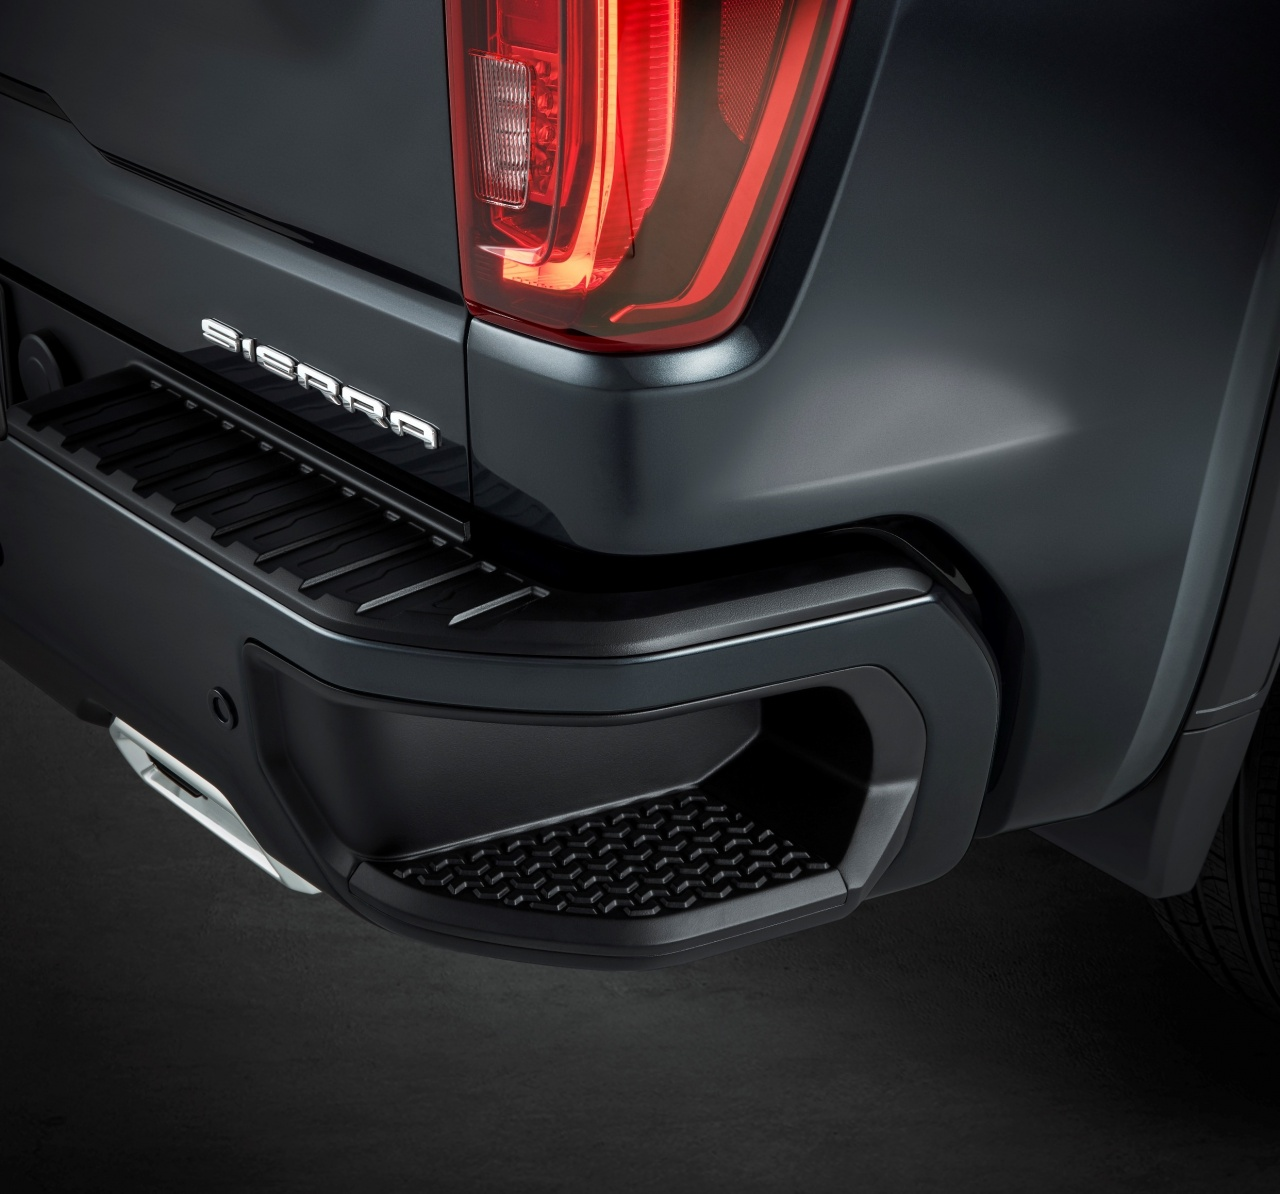 2019-gmc-sierra-duramax-diesel-edges-out-ford-f-150-powerstroke-v6-diesel_11.jpg